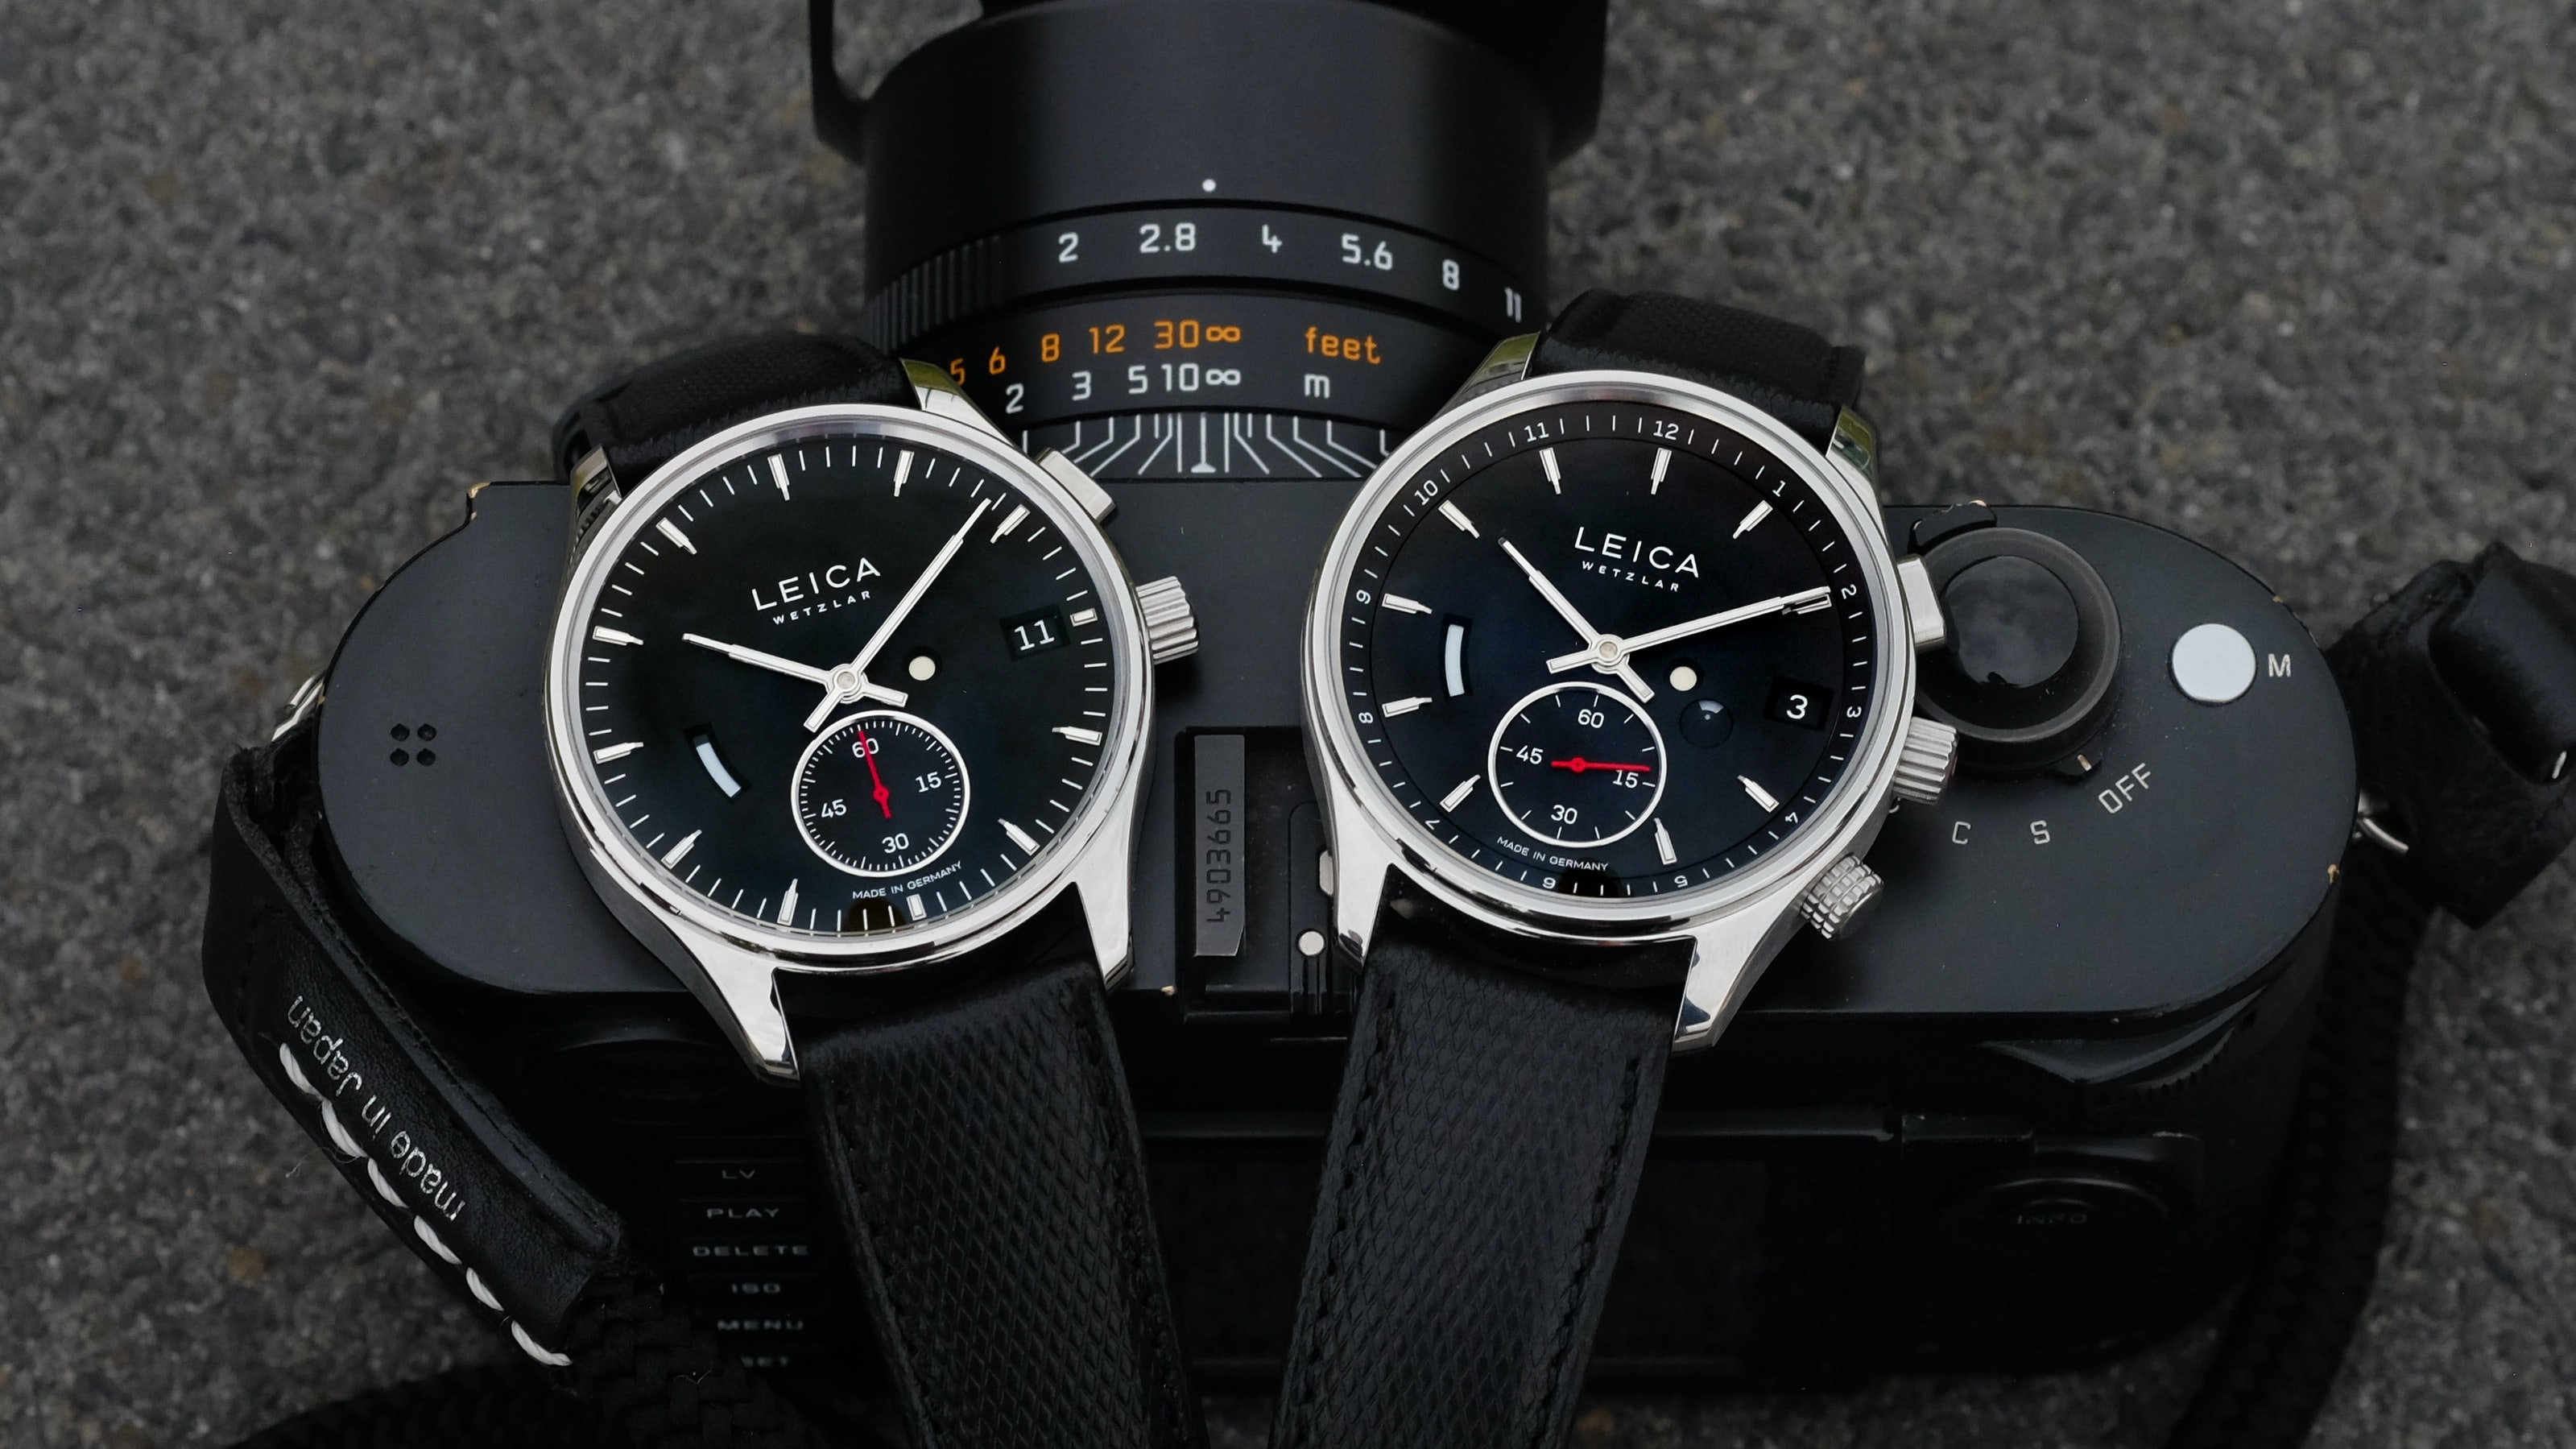 Leica 10.jpg?ixlib=rails 1.1  Introducing: The Leica L1 And L2 Watches (Live Pics & Details) Leica 10